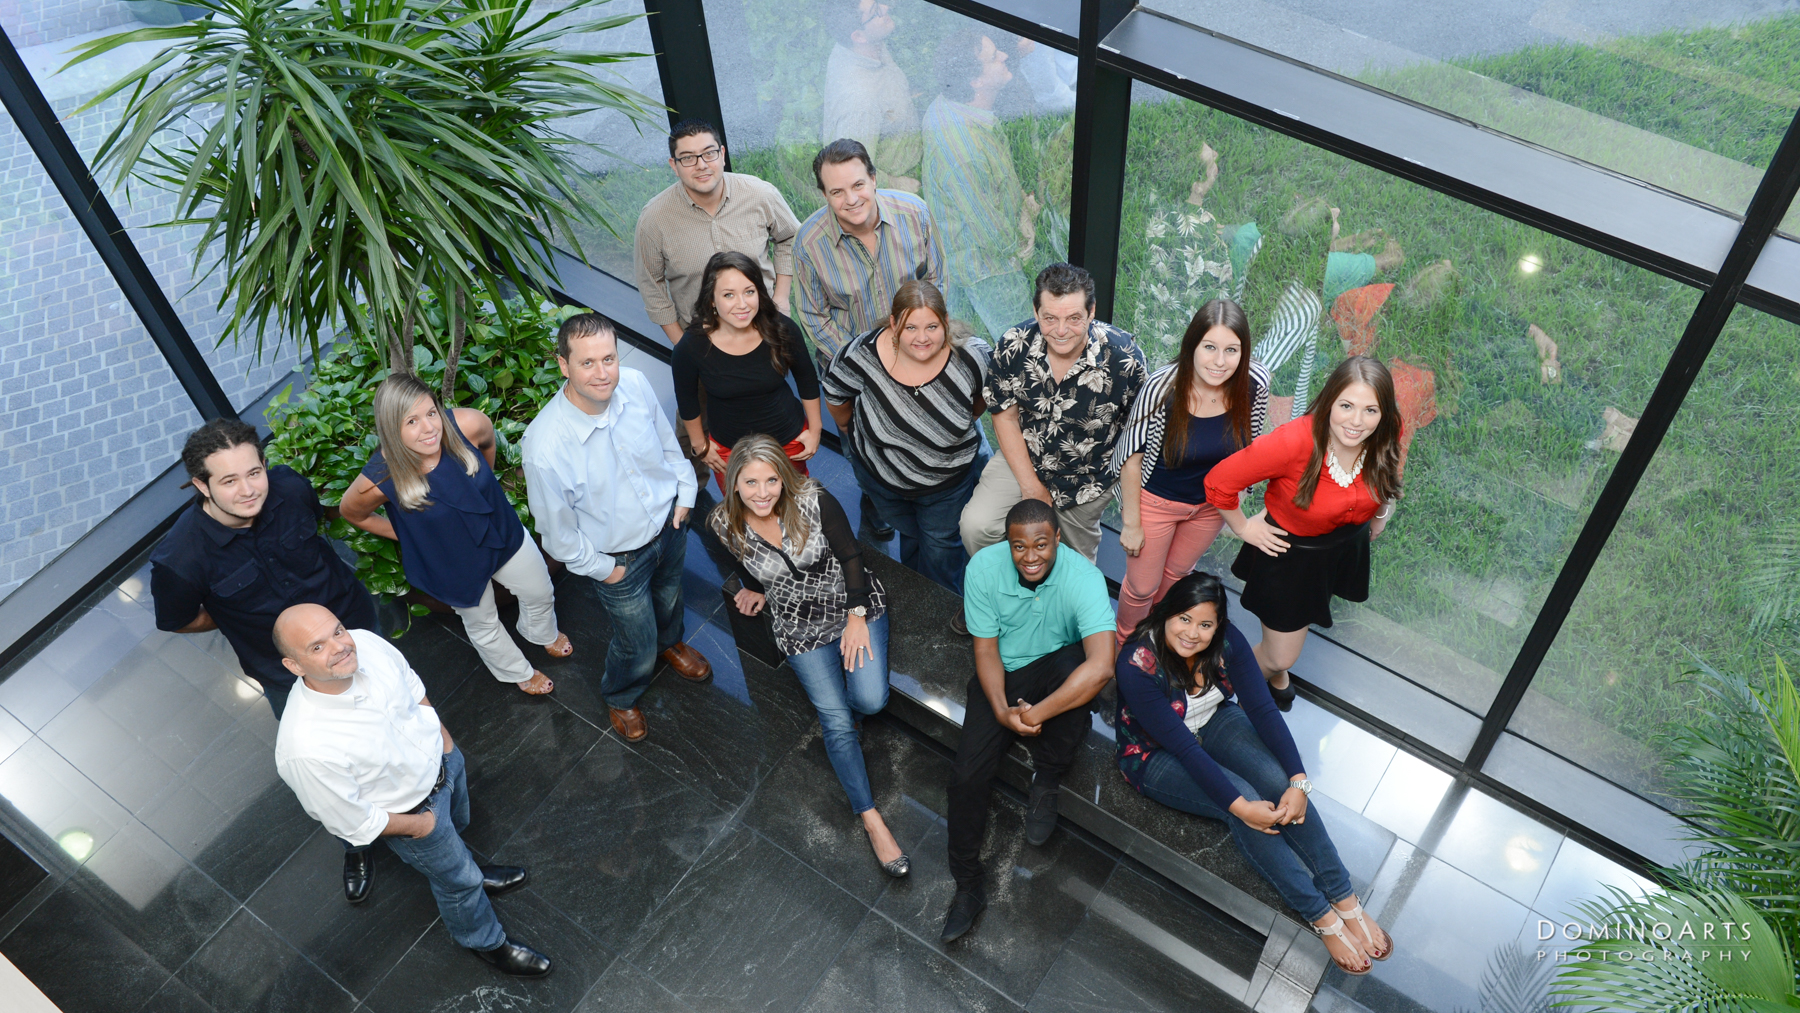 PR team photography by Domino Arts